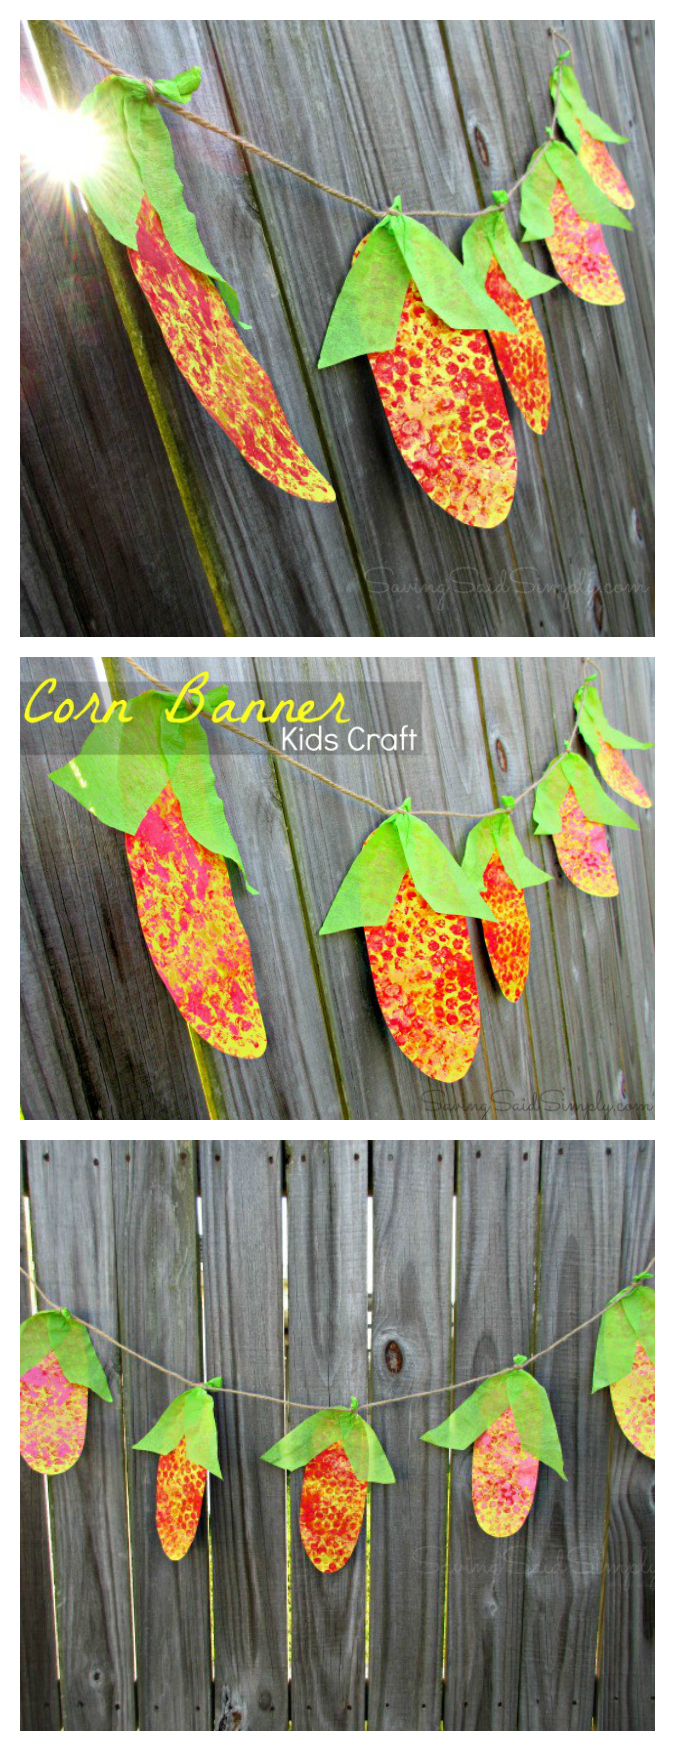 Corn garland craft pinterest